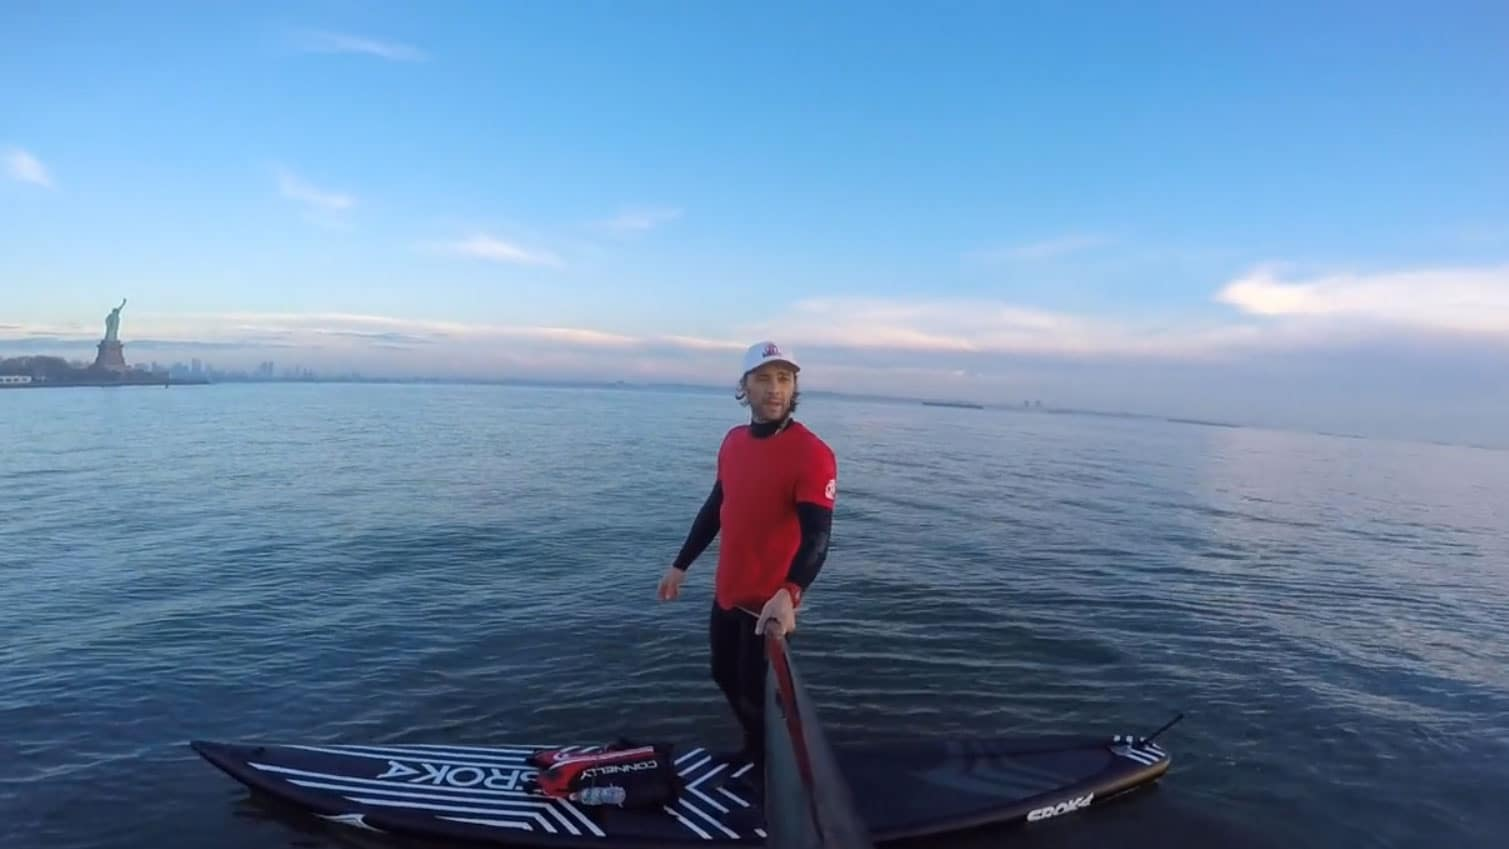 Ballade en stand up paddle à New York avec Dariusz Garko